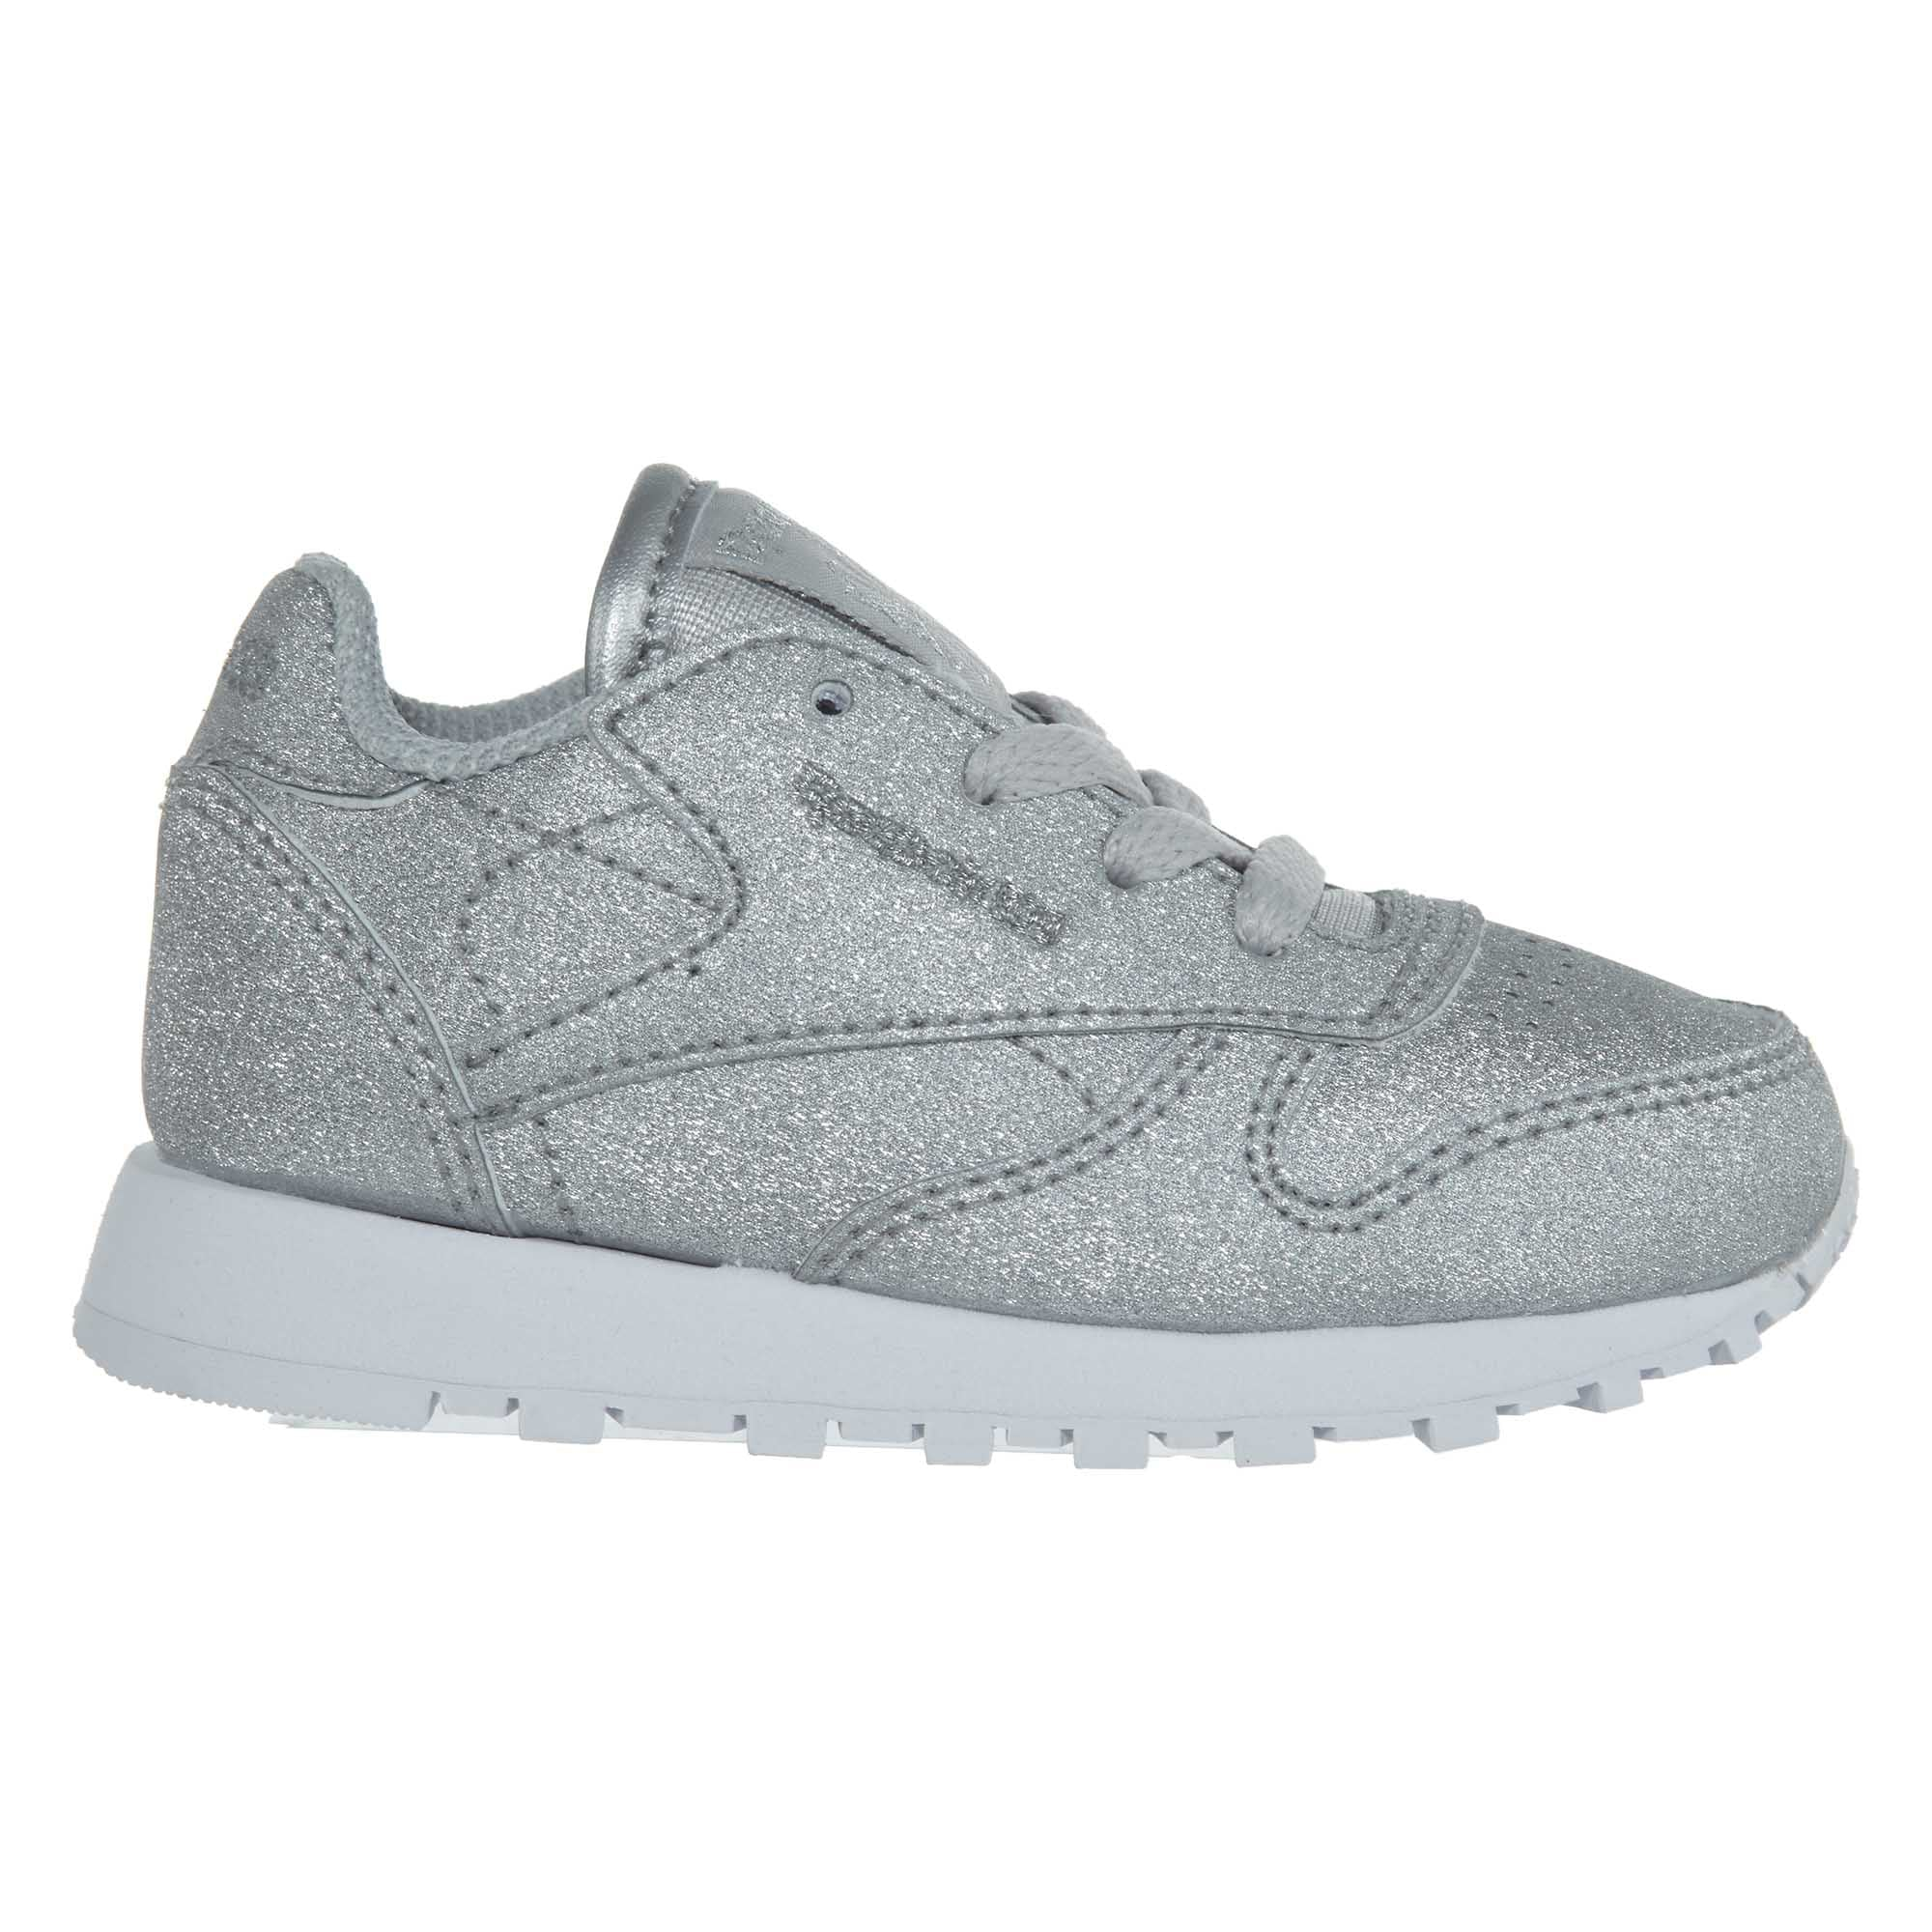 Reebok Classic Leather Syn Toddler/'s Shoes Silver Metallic//Snow Grey BS7583